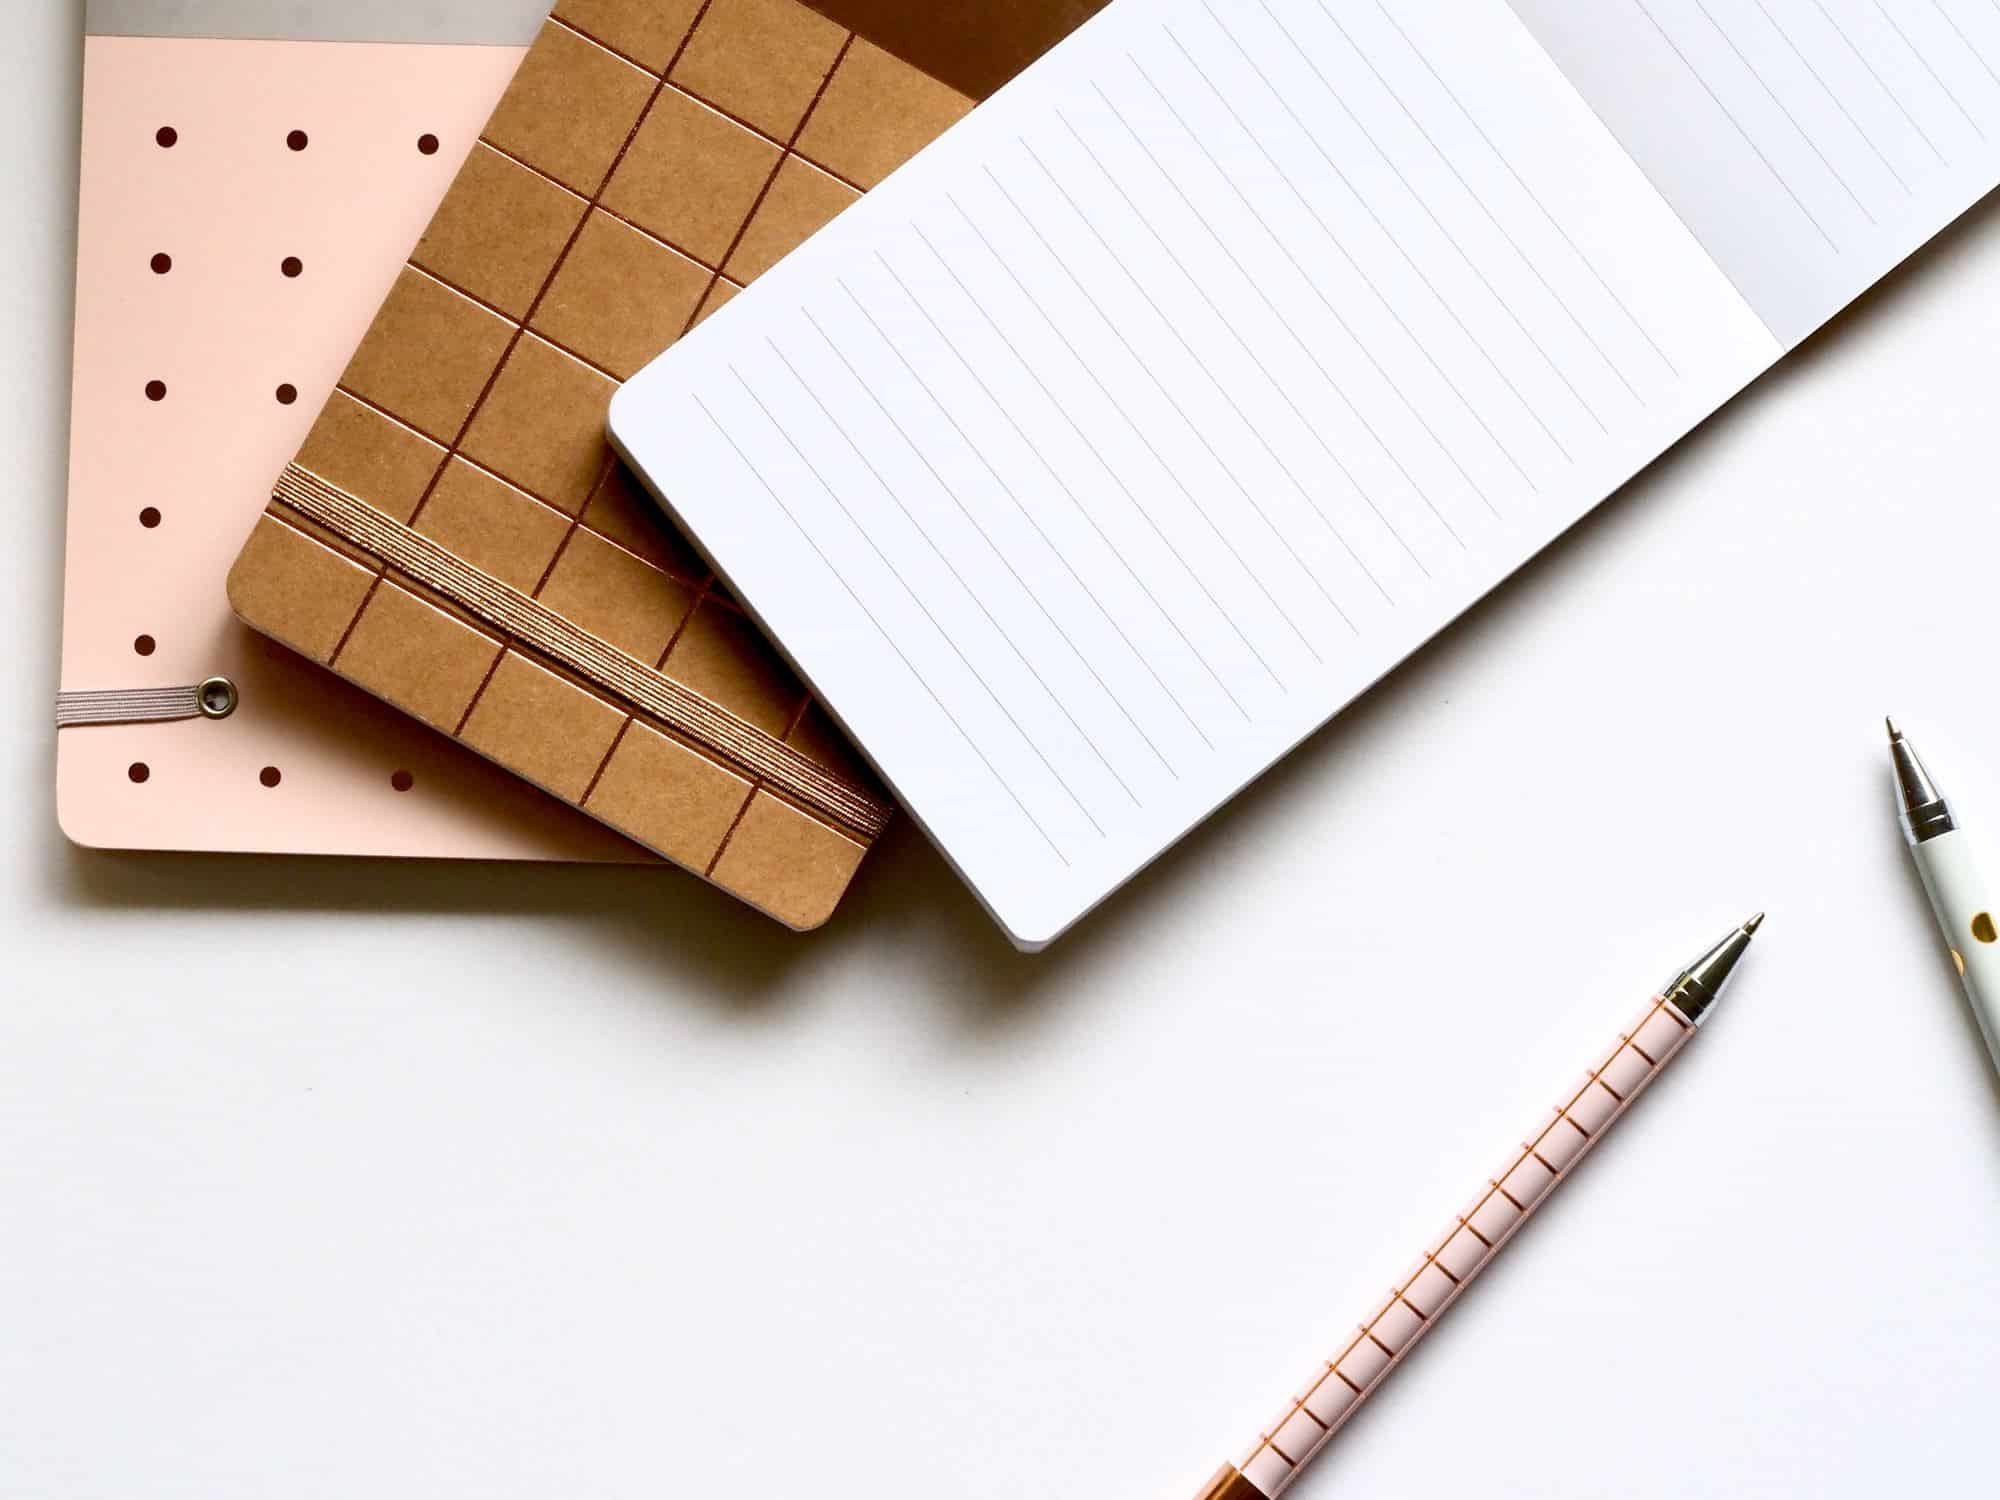 a pencil and three different surfaces to hold information are spread across the image